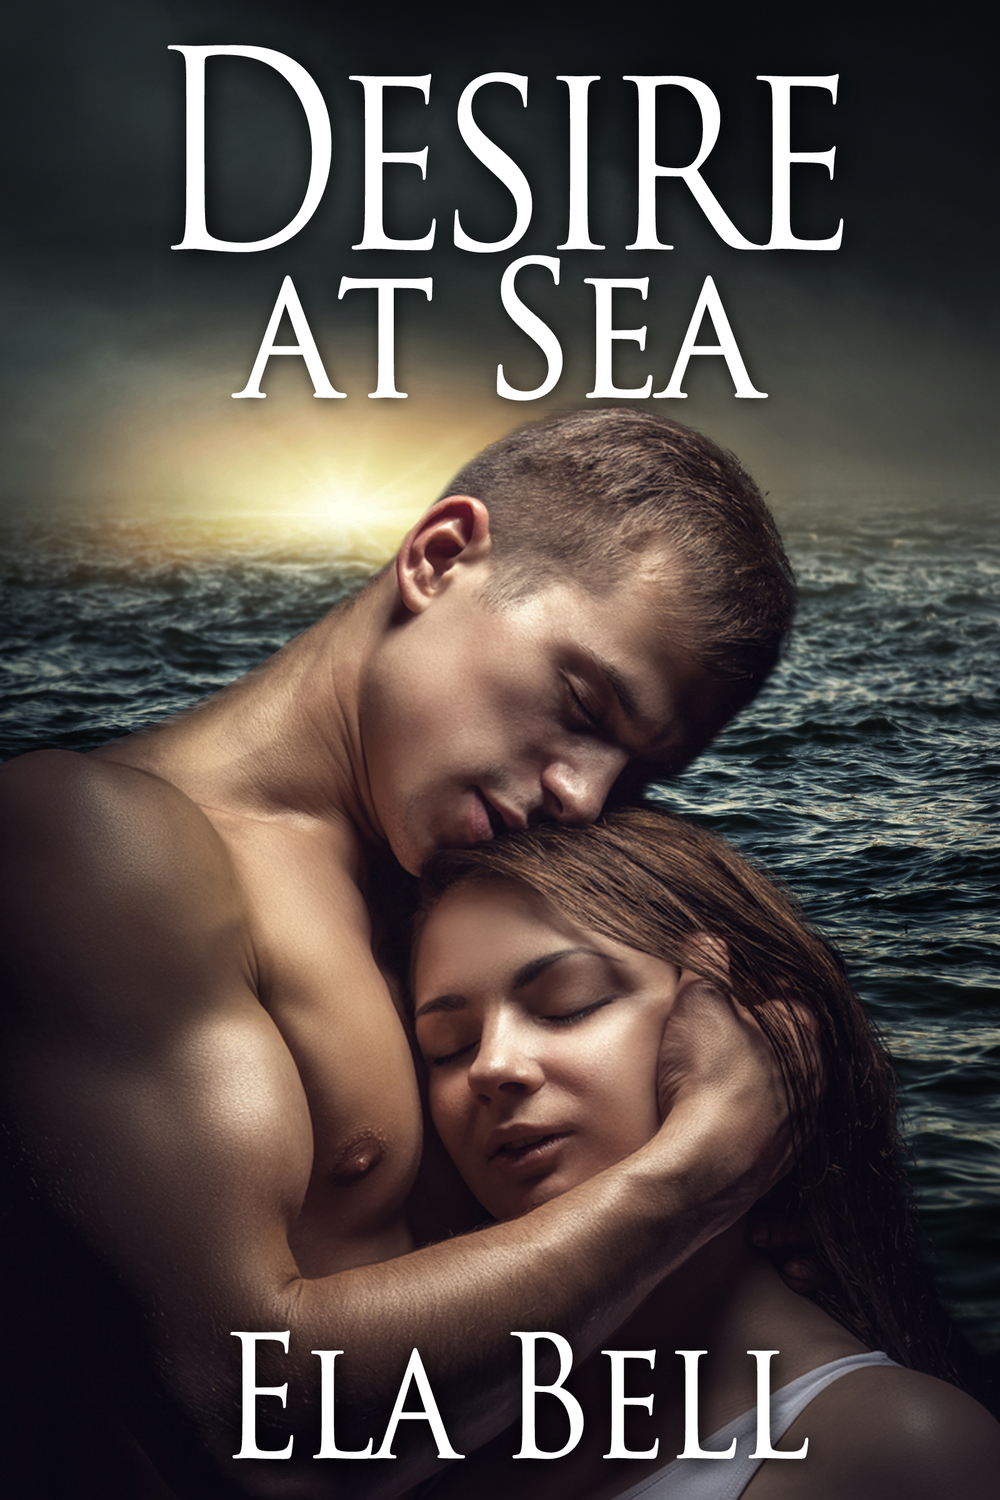 Kara and Alex meet at a show. He's a sea captain bound for dangerous territory; Kara finds her heart with Alex.